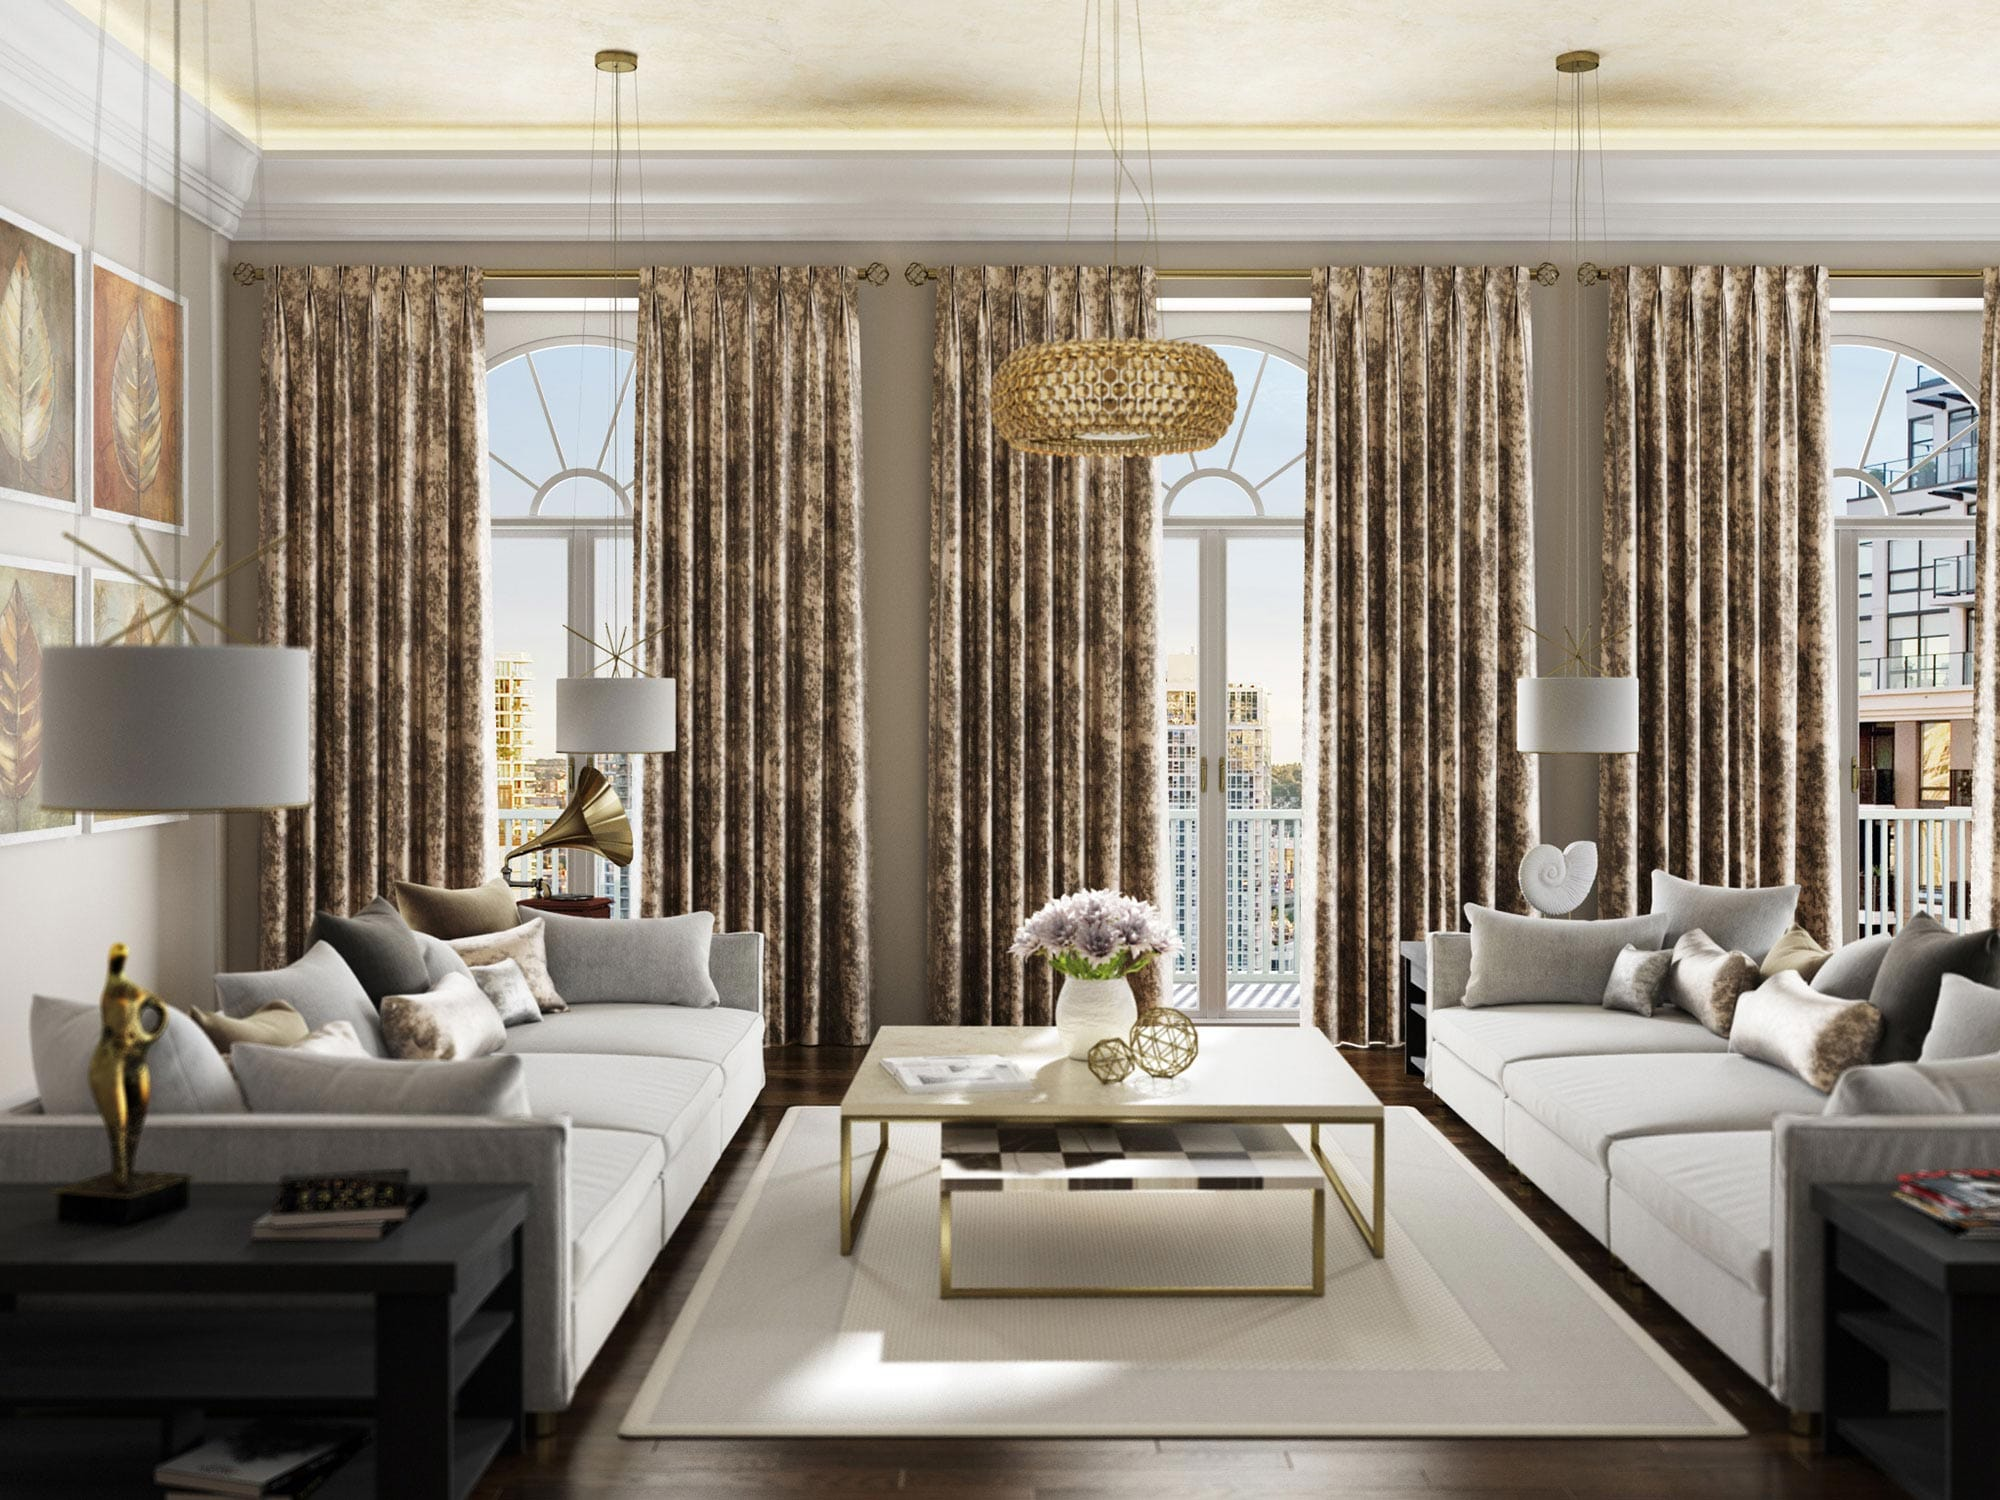 Curtains By Tuiss Wonderful Collection Of Luxury Made